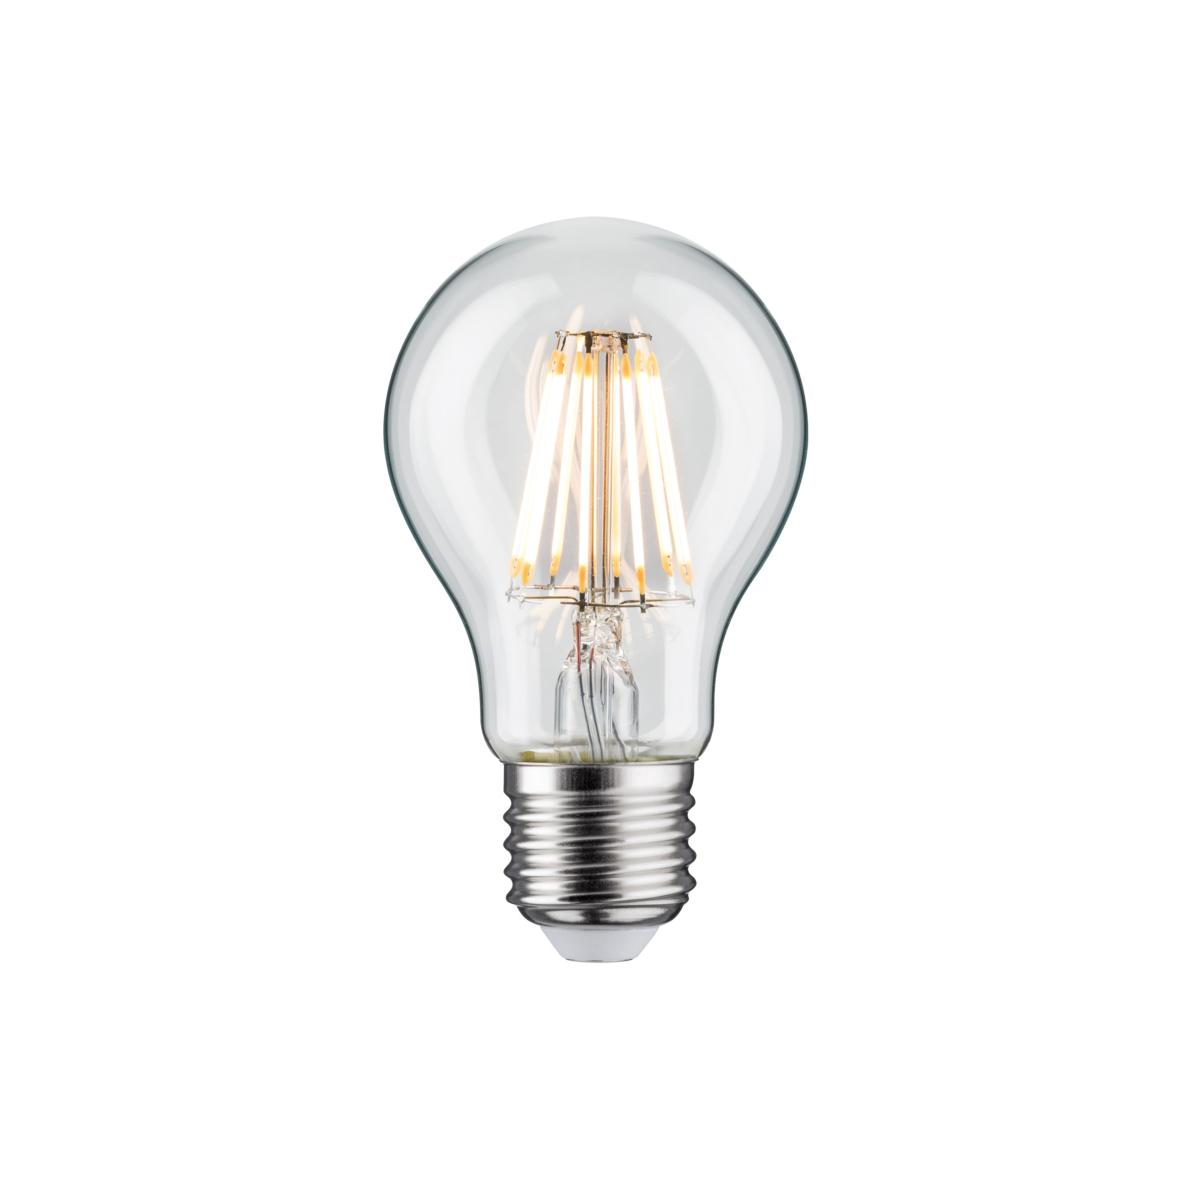 Ampoule Filament Ampoule Led Filament Dimmable 7 5w E27 Blanc Chaud